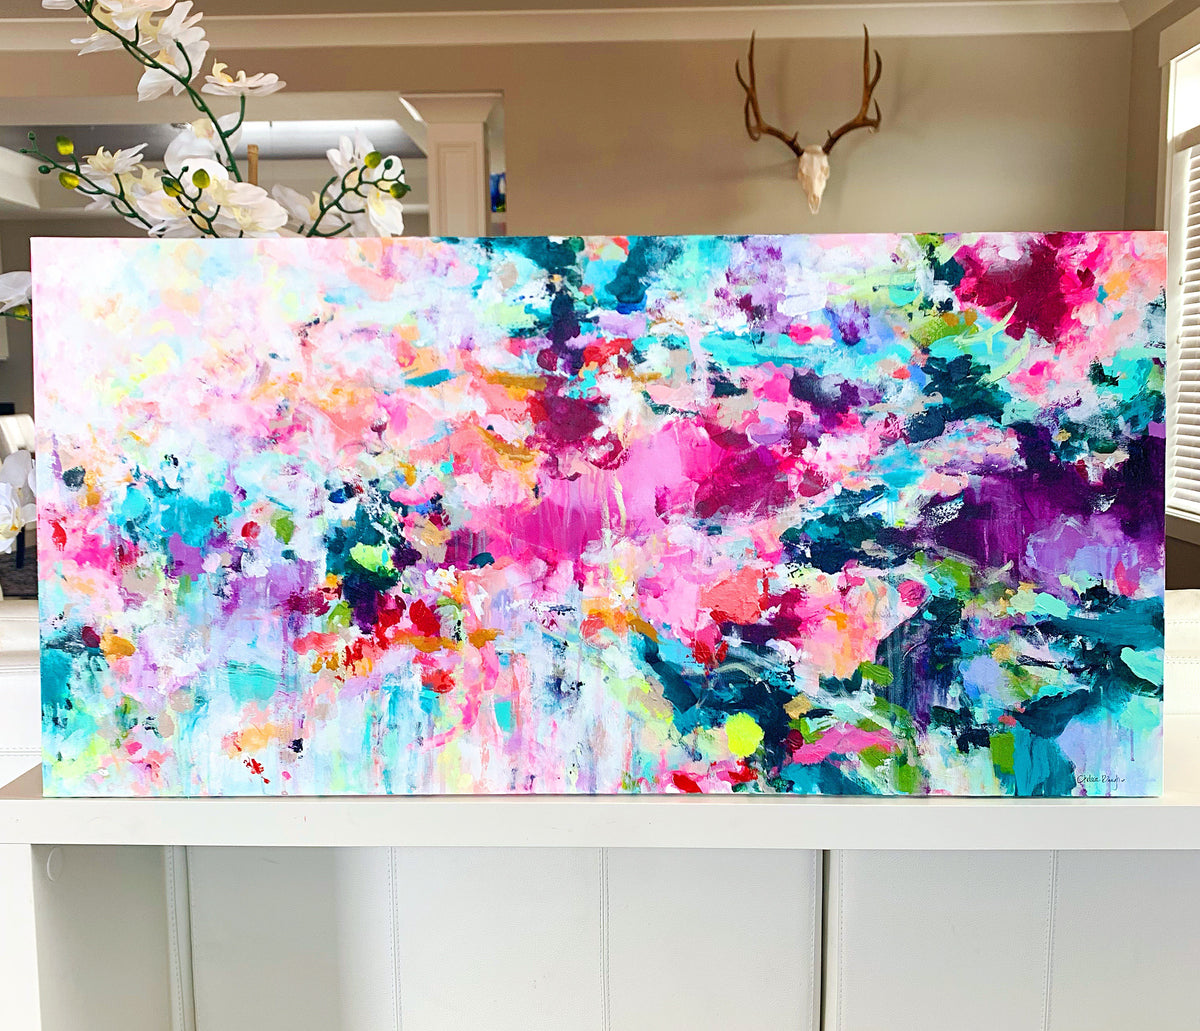 "'What A Life' 24x48"" Original Painting"